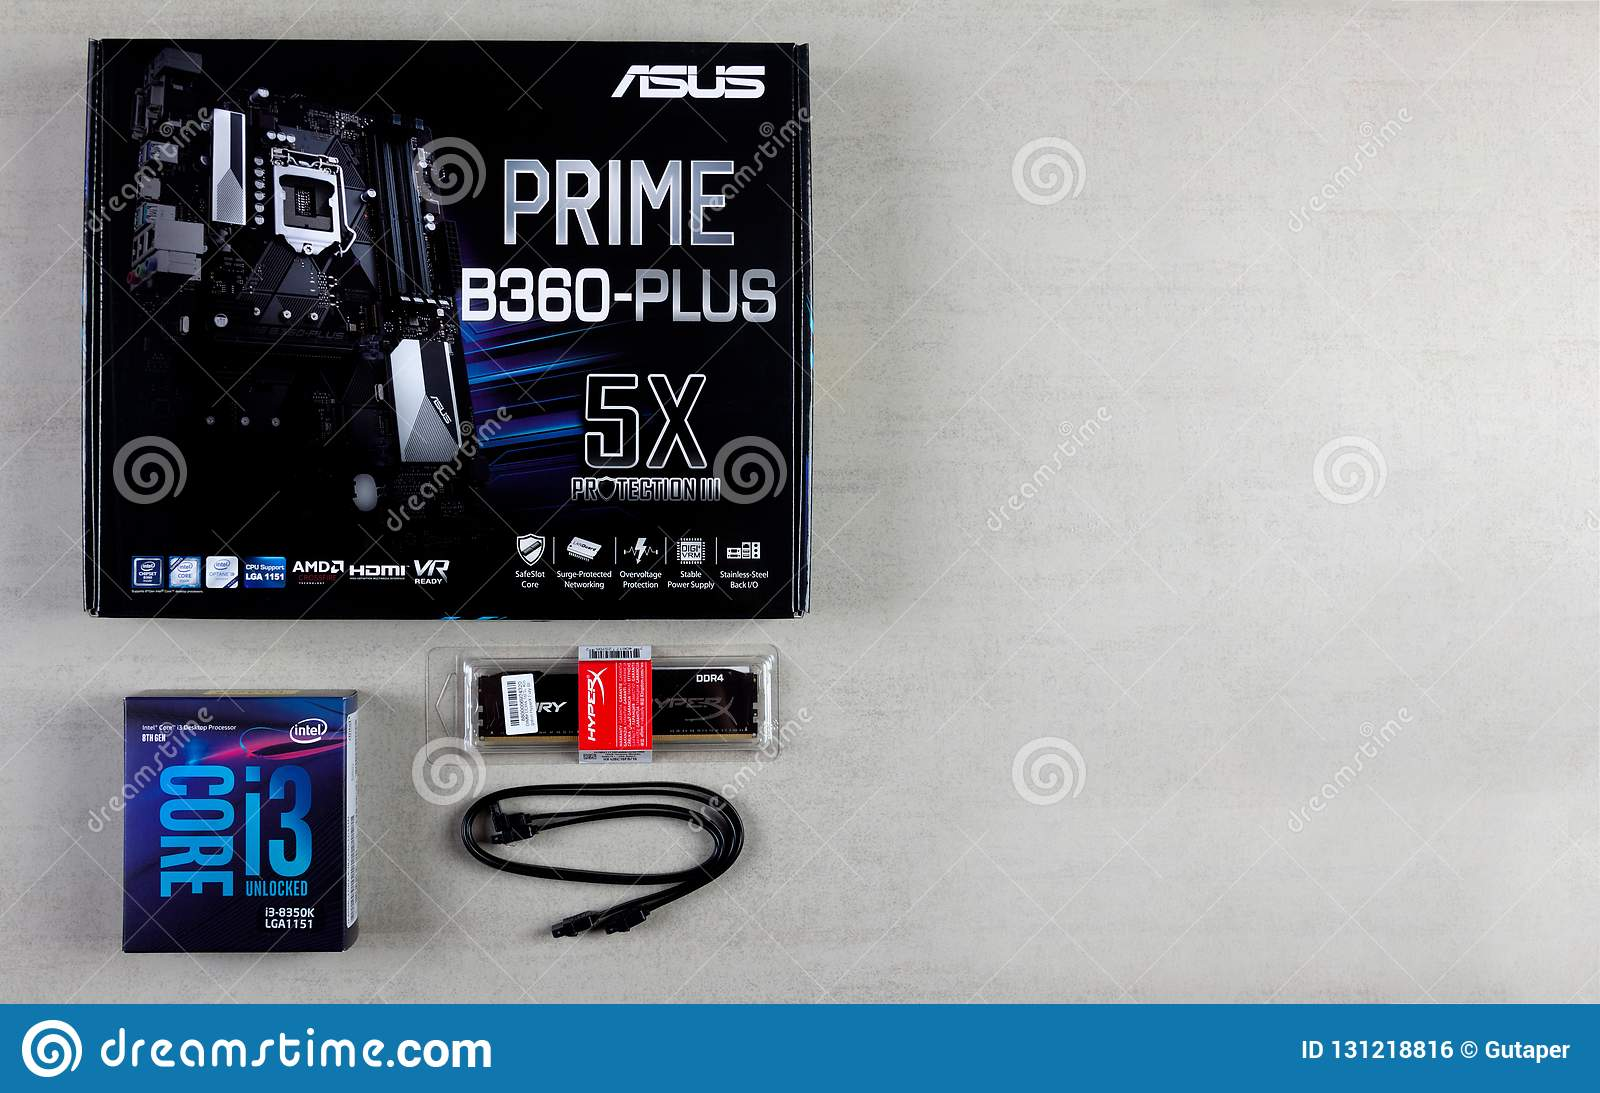 Asus motherboard in box, processor intel I3, RAM Kingston Fury Hyper 16 GB and cable for connecting devices SATA 6Gbs on a gray ba